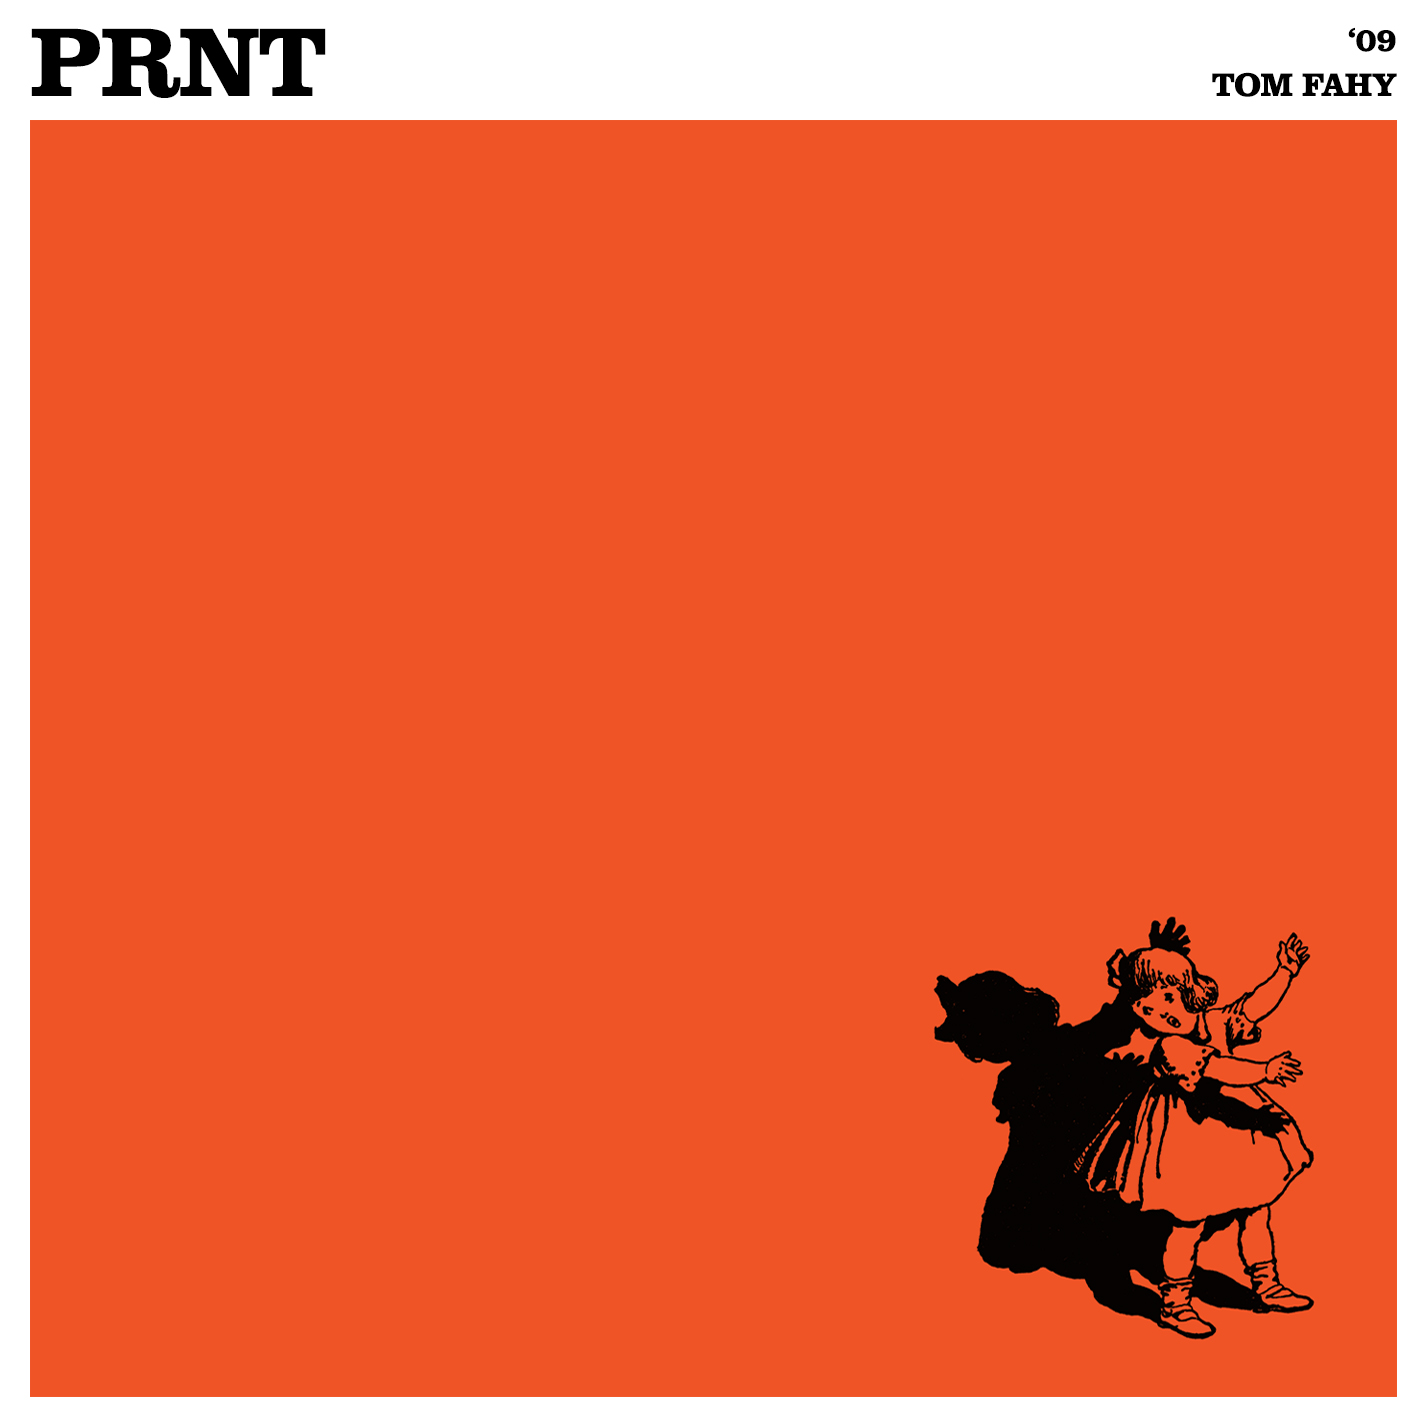 PRNT, by Tom Fahy (2009)